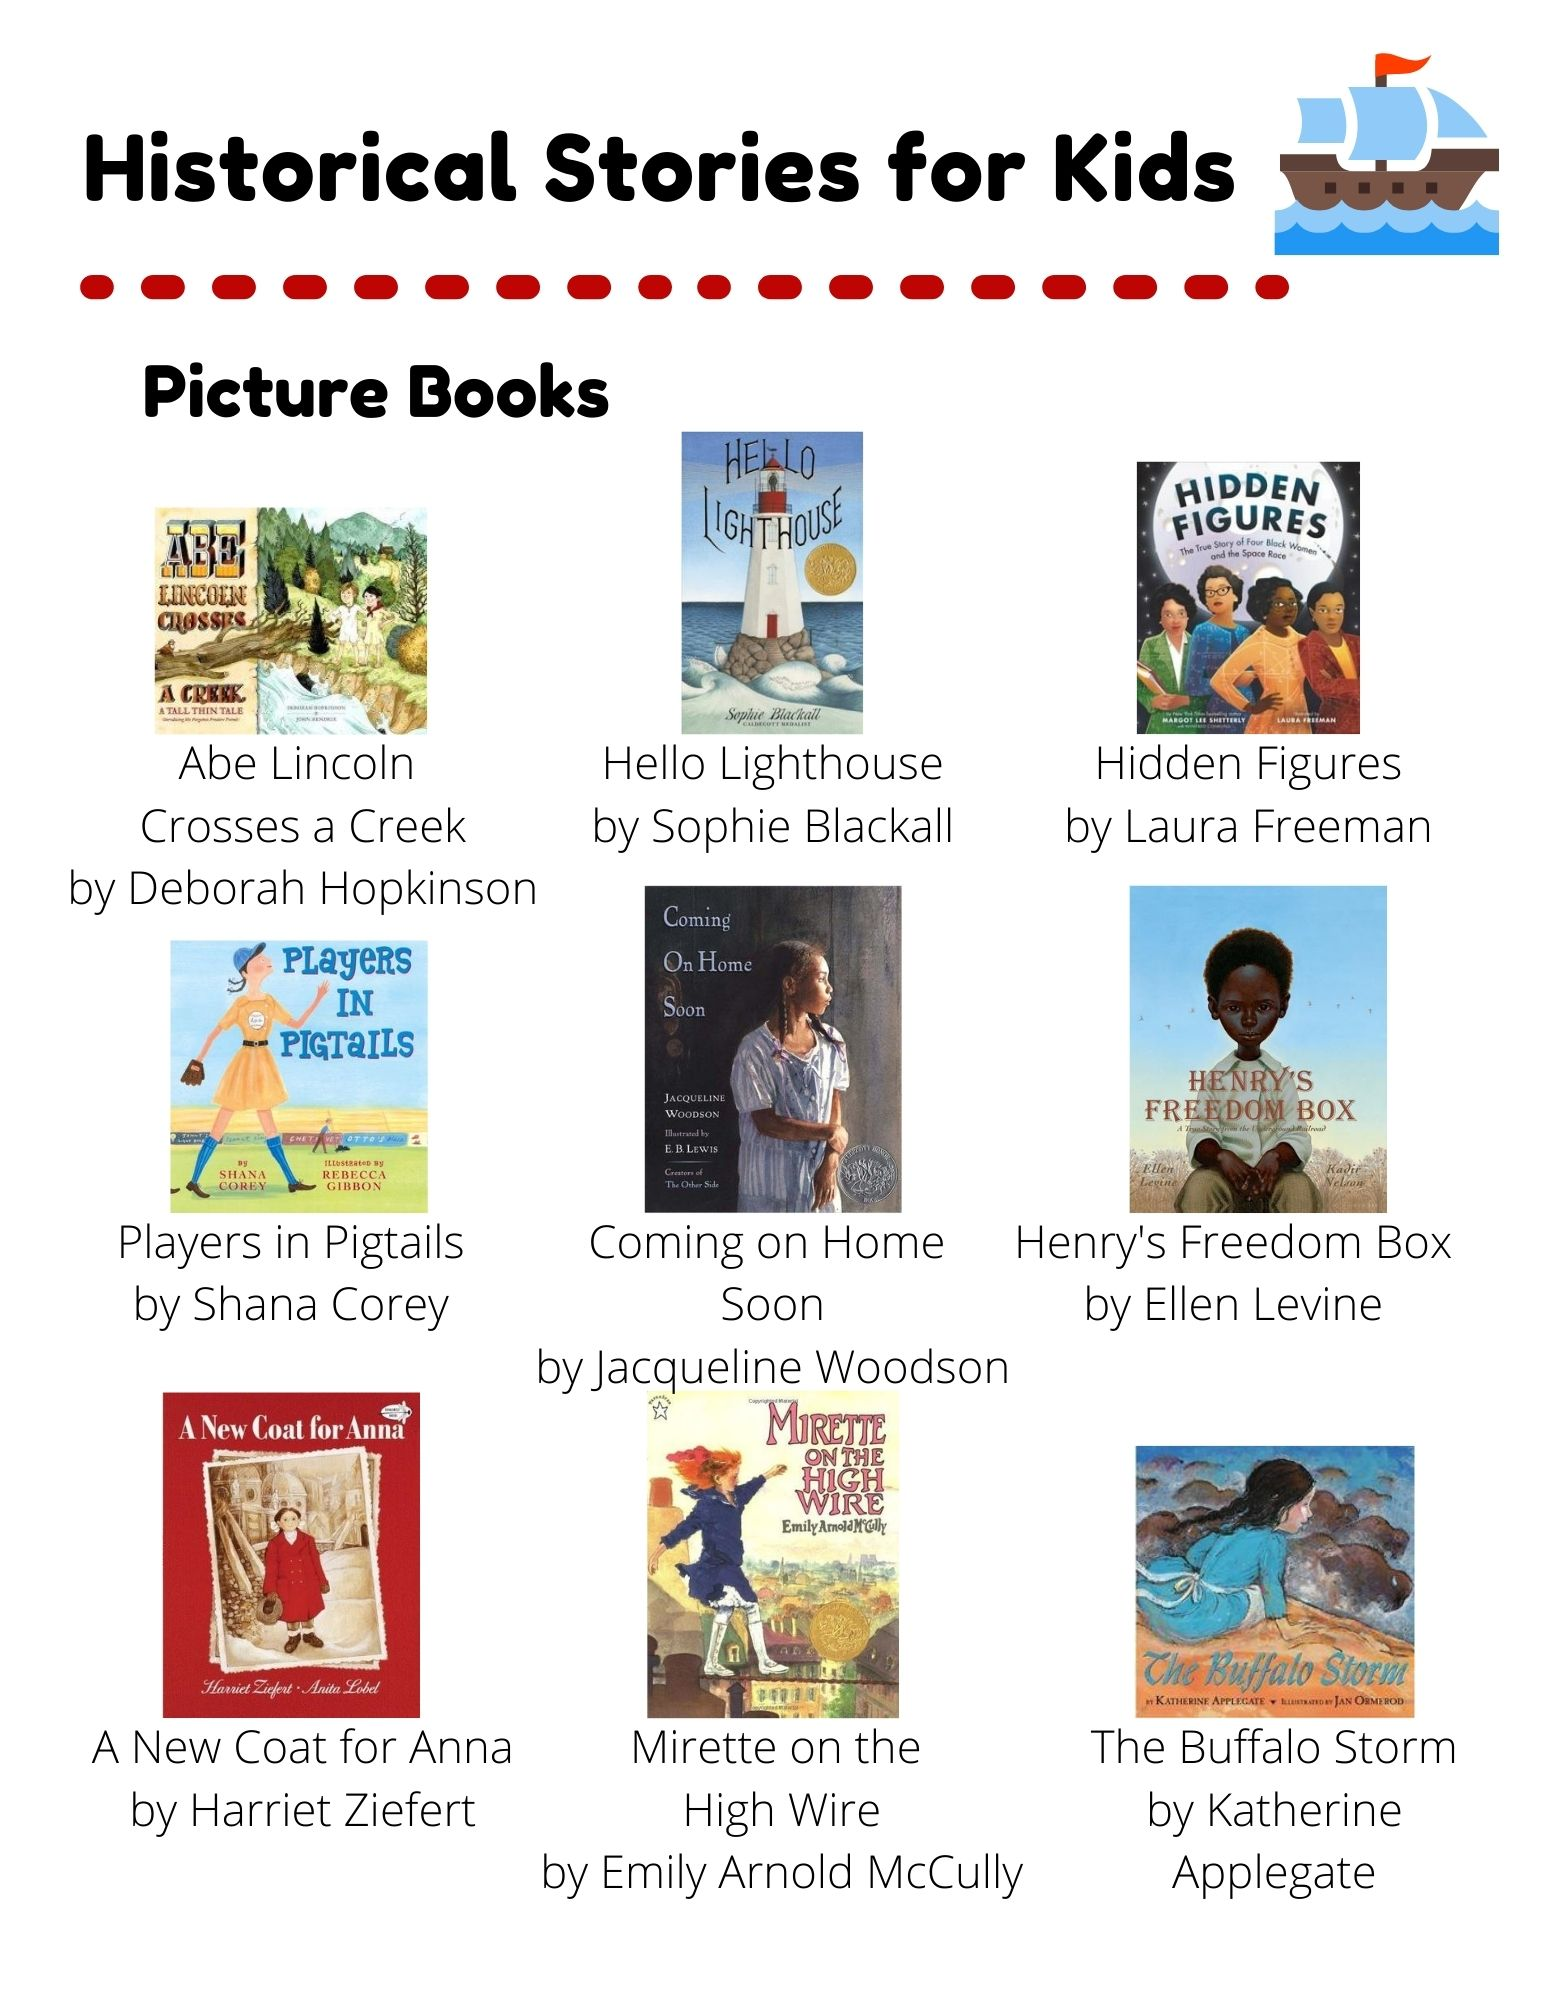 Historical Stories: Picture Books: Abe Lincoln  Crosses a Creek by Deborah Hopkinson. Hello Lighthouse by Sophie Blackall. Hidden Figures by Laura Freeman. Players in Pigtails by Shana Corey. Coming on Home  Soon by Jacqueline Woodson. Henry's Freedom Box by Ellen Levine. A New Coat for Anna by Harriet Ziefert. Mirette on the  High Wire by Emily Arnold McCully. The Buffalo Storm by Katherine Applegate. Chapter Books: Echo by Pam Munoz Ryan. Heart of a Samurai by Margi Preus. The Night Diary by Veera Hiranandani. Number the Stars by Lois Lowry. A Long Way From Chicago by Richard Peck. The War that Saved my Life by Kimberly Brubaker Bradley. One Crazy Summer by Rita Williams-Garcia. Wolf Hollow by Lauren Wolk. Esperanza Rising by Pam Munoz Ryan.